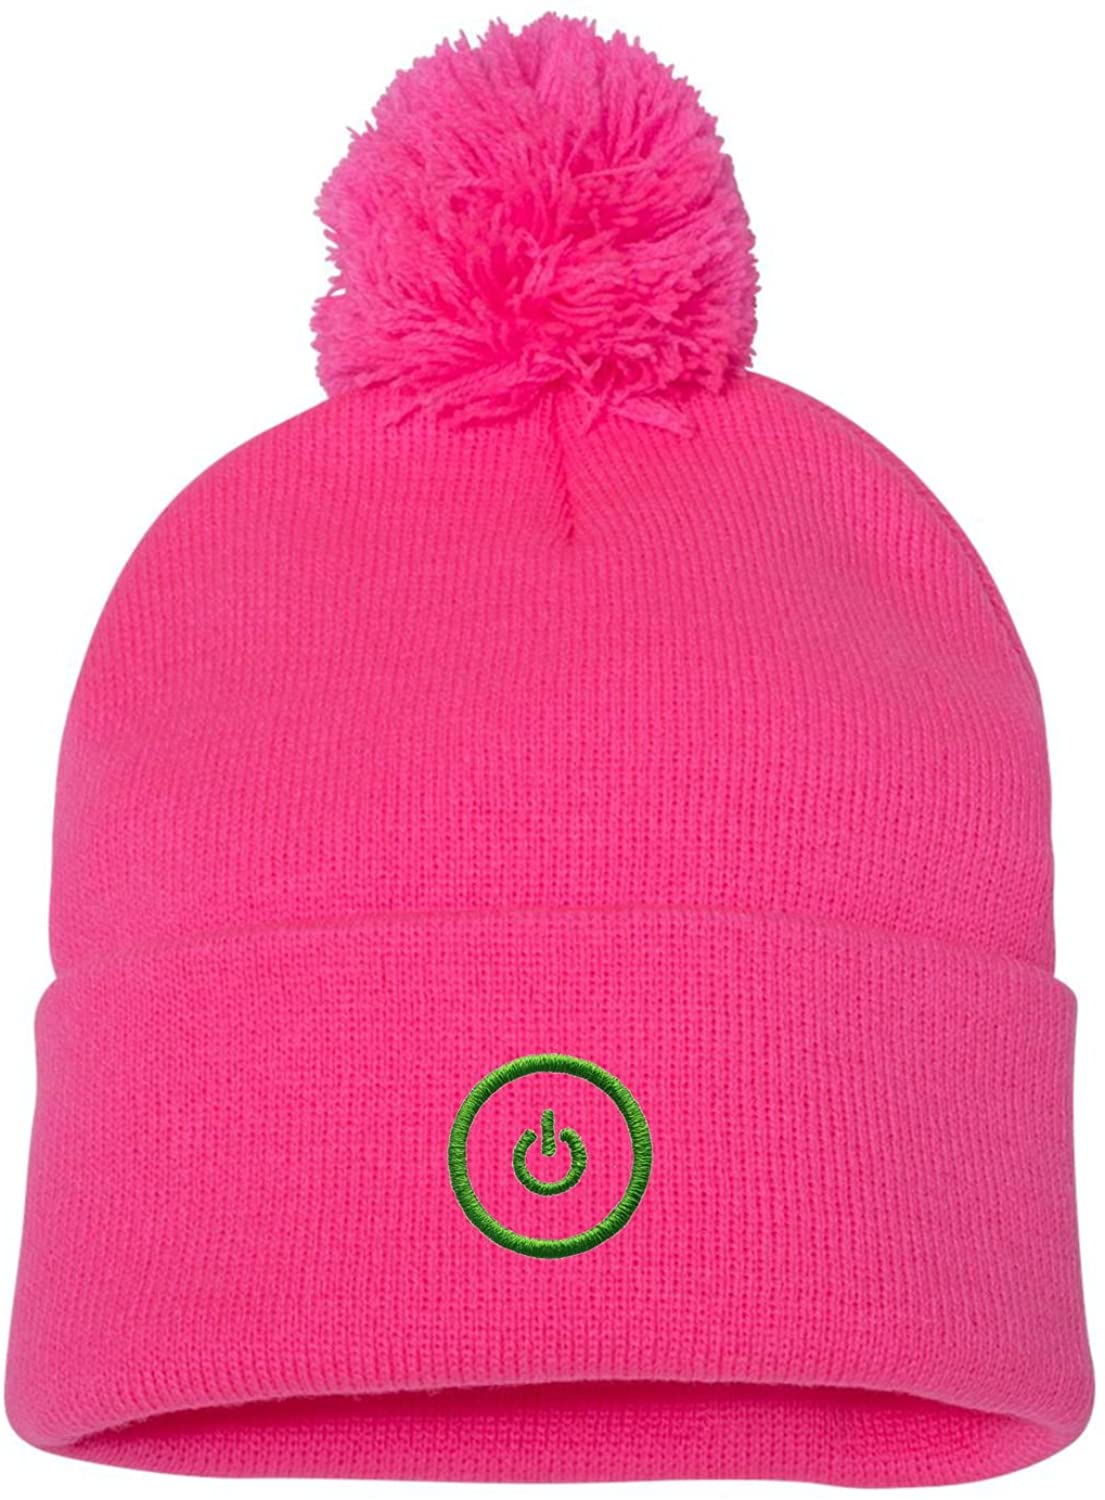 Go All Out Adult Gaming Button Embroidered Knit Beanie Pom Cap